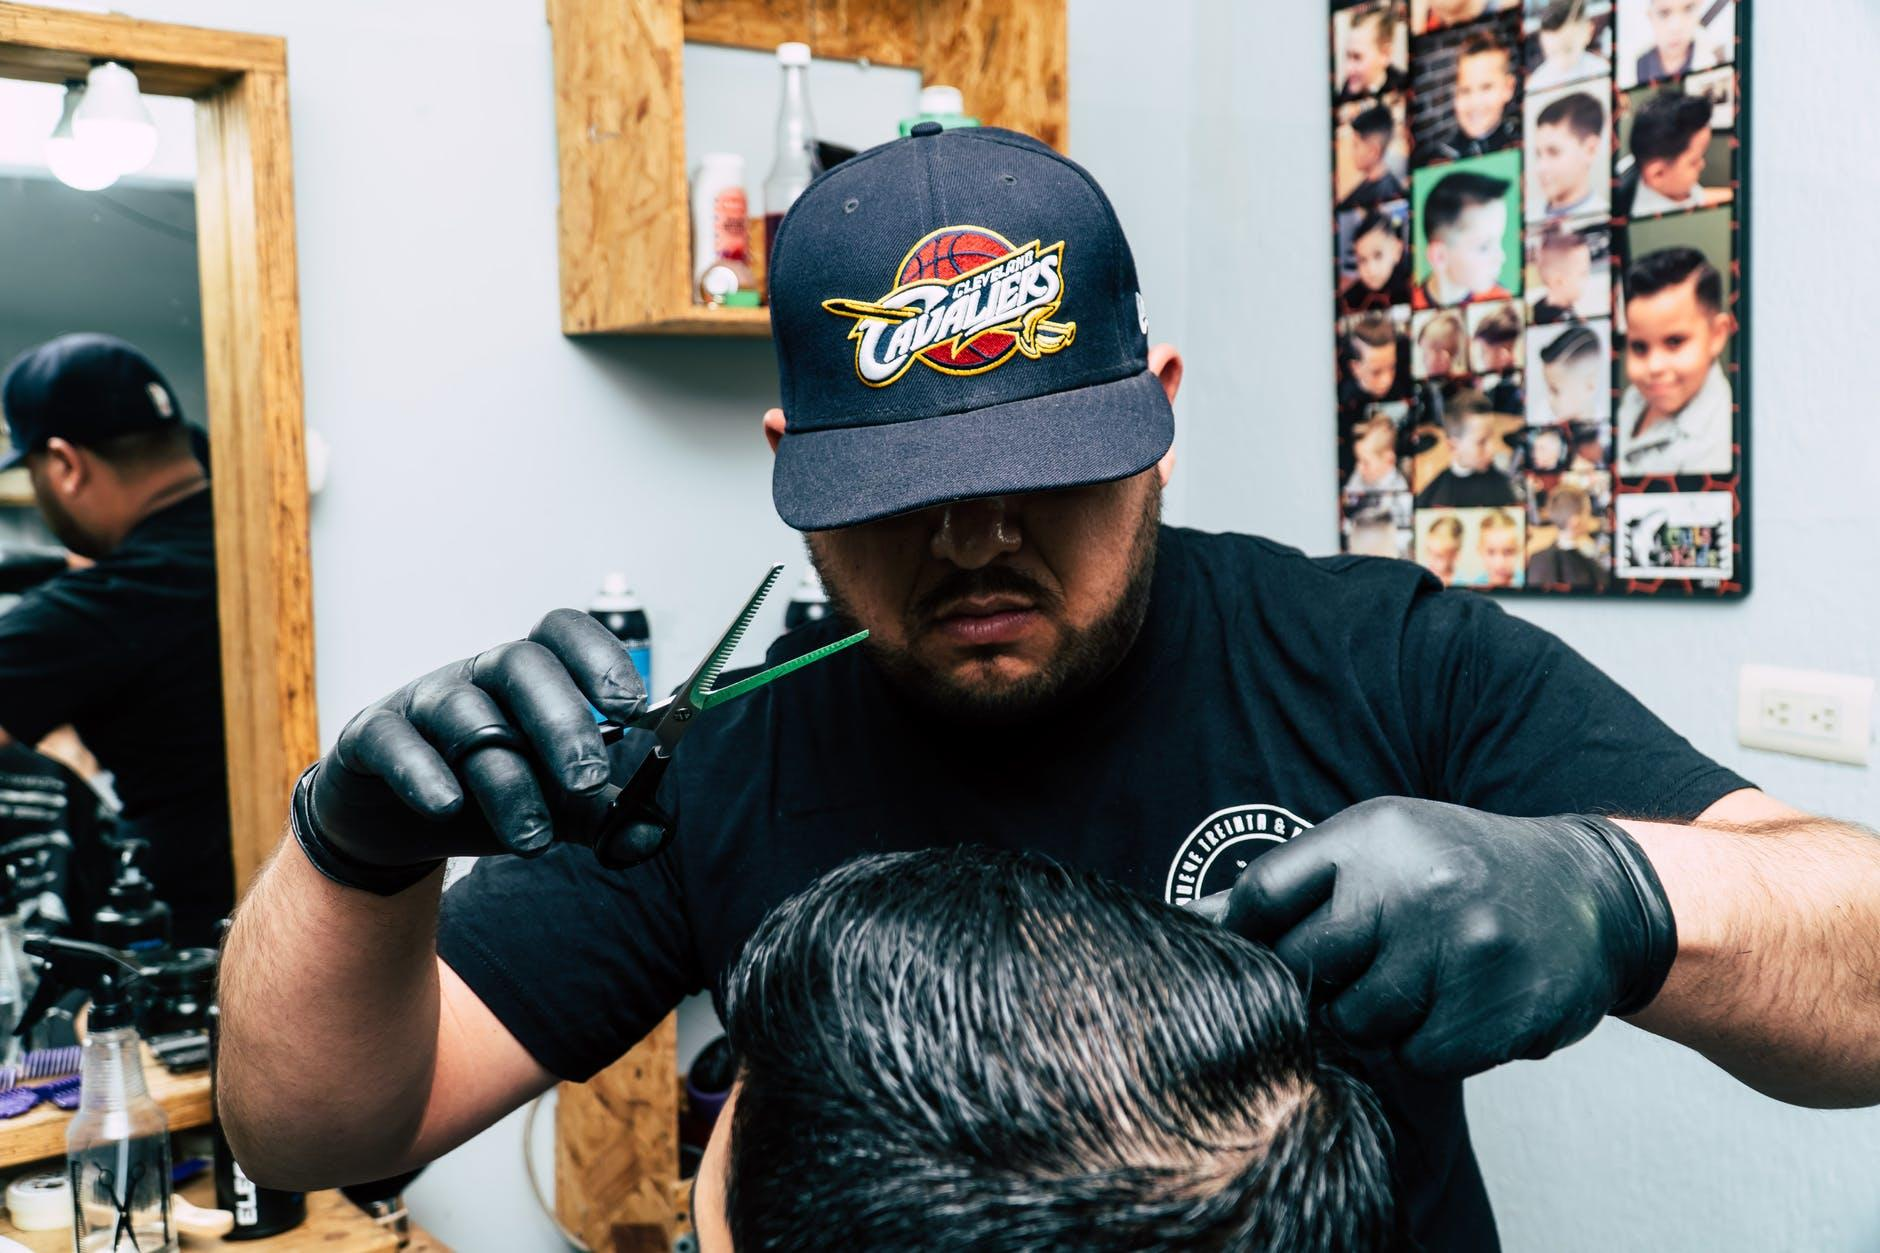 Top 5 Reasons Your Barbershop Needs To Add an Online Business Management System